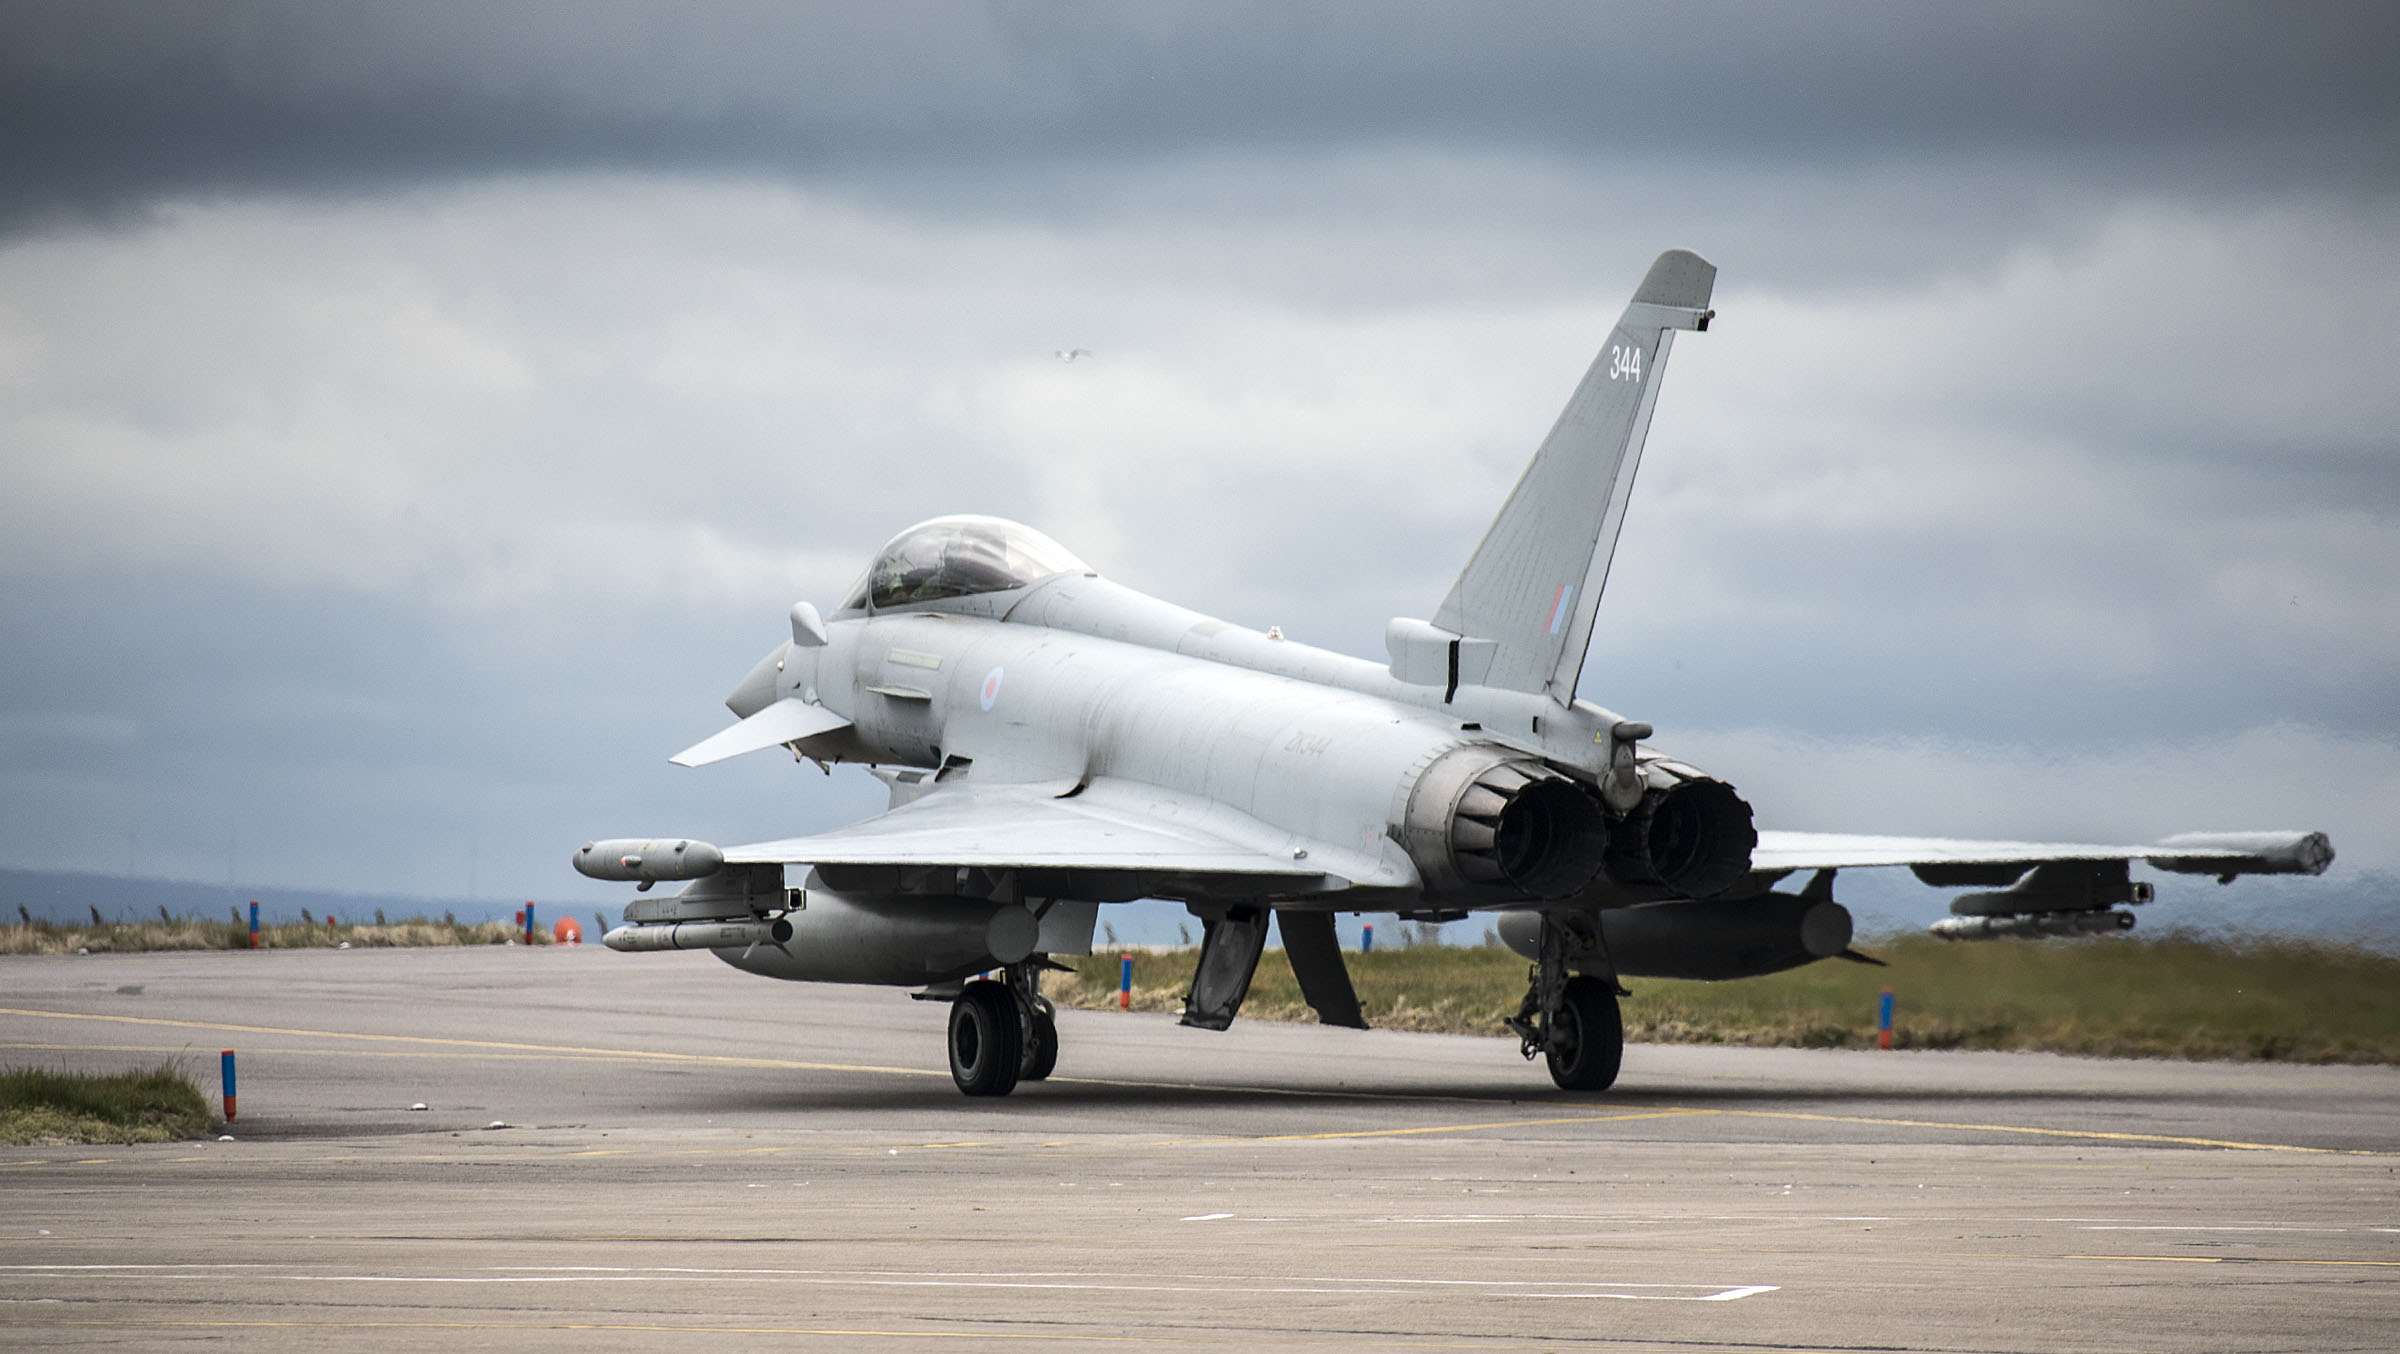 Five Typhoons from RAF Lossiemouth's 6 Sqn are taking part in the Arctic Challenge Exercise.